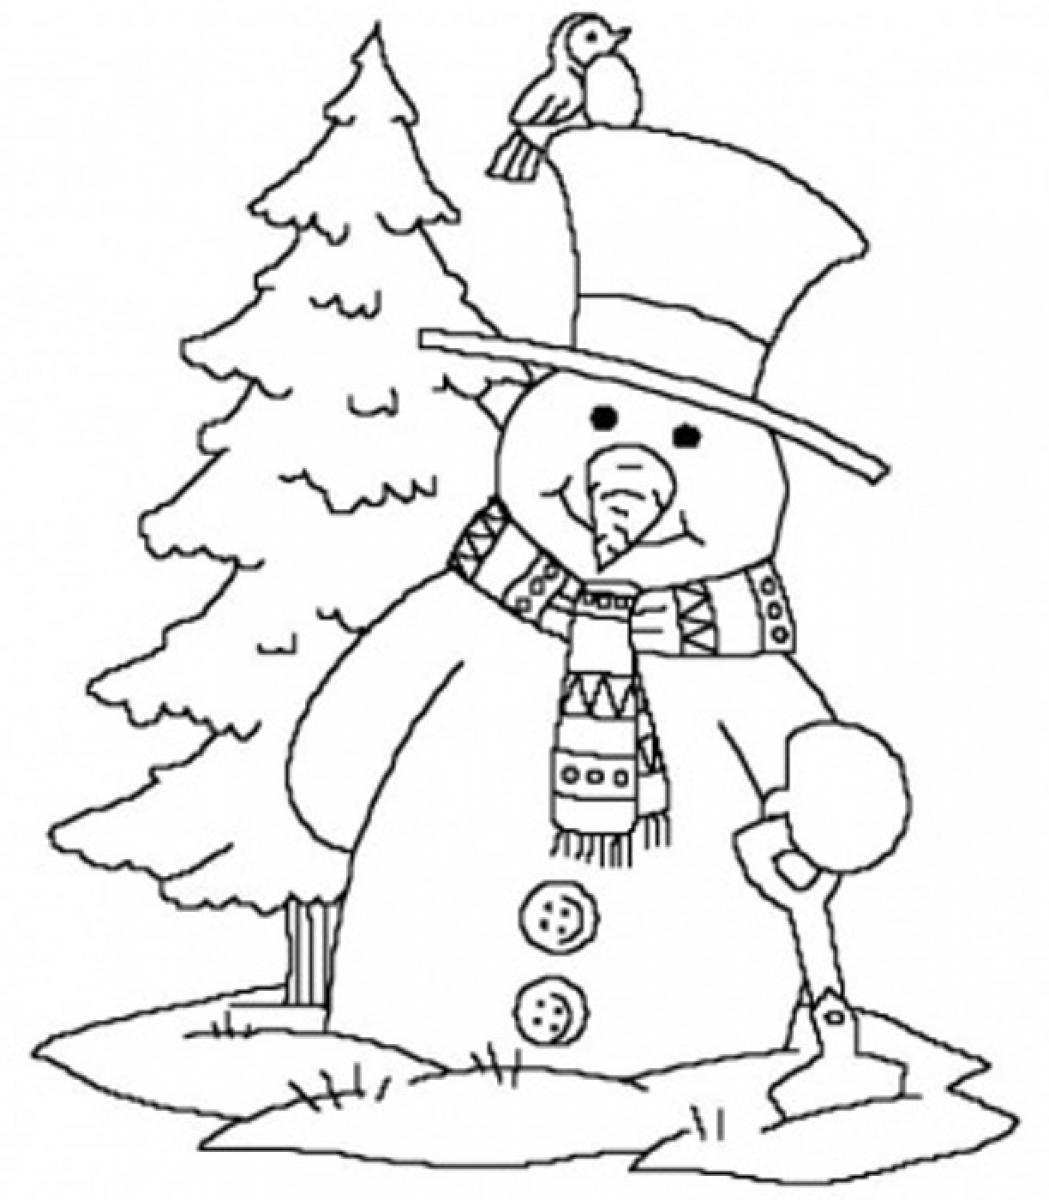 Free Printable Winter Coloring Pages - Printable Winter Coloring Pages